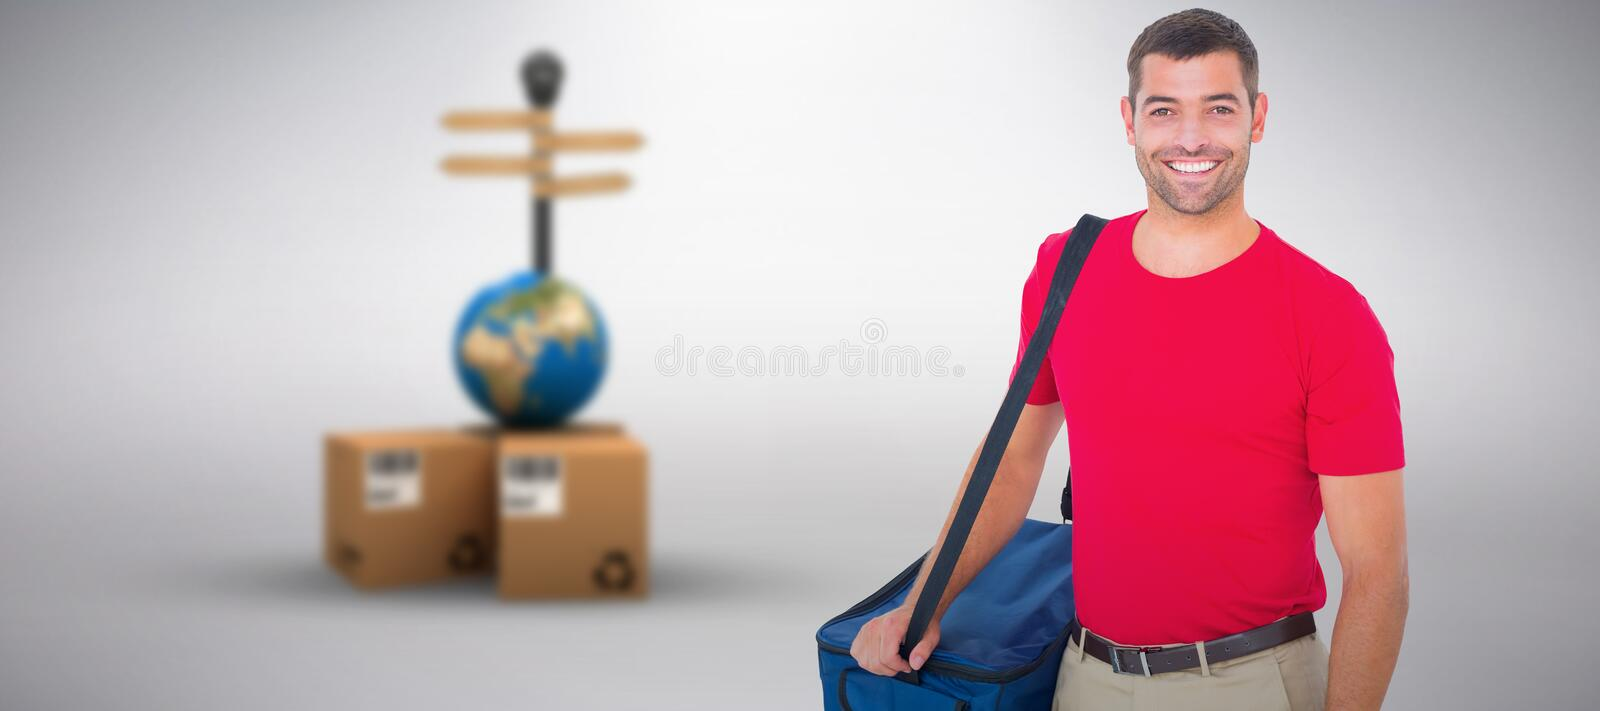 Composite image of pizza delivery man holding bag royalty free stock images